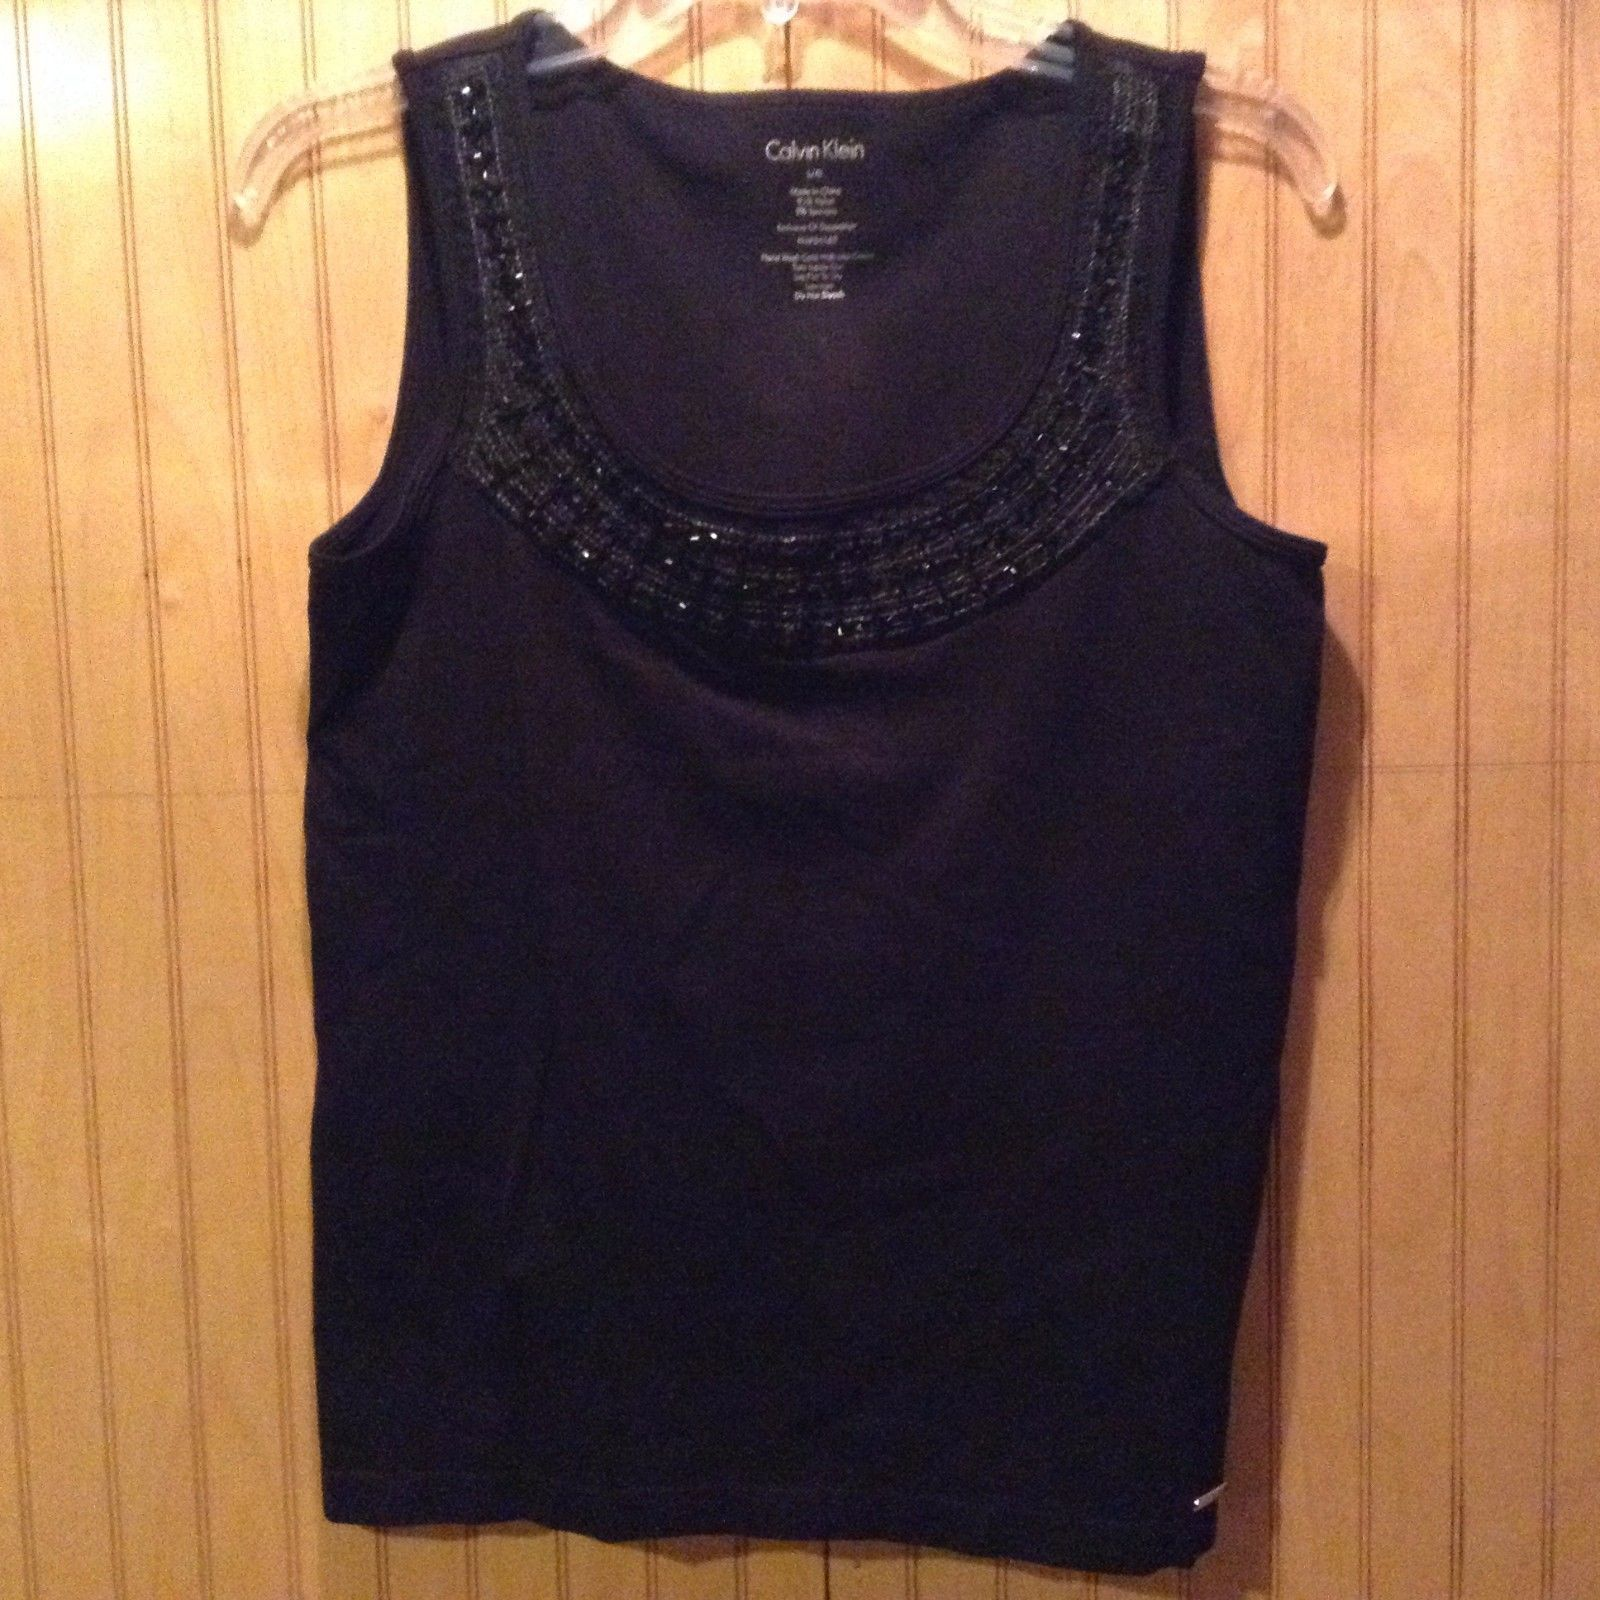 Calvin Klein Black Sleeveless Shirt Women Size Large